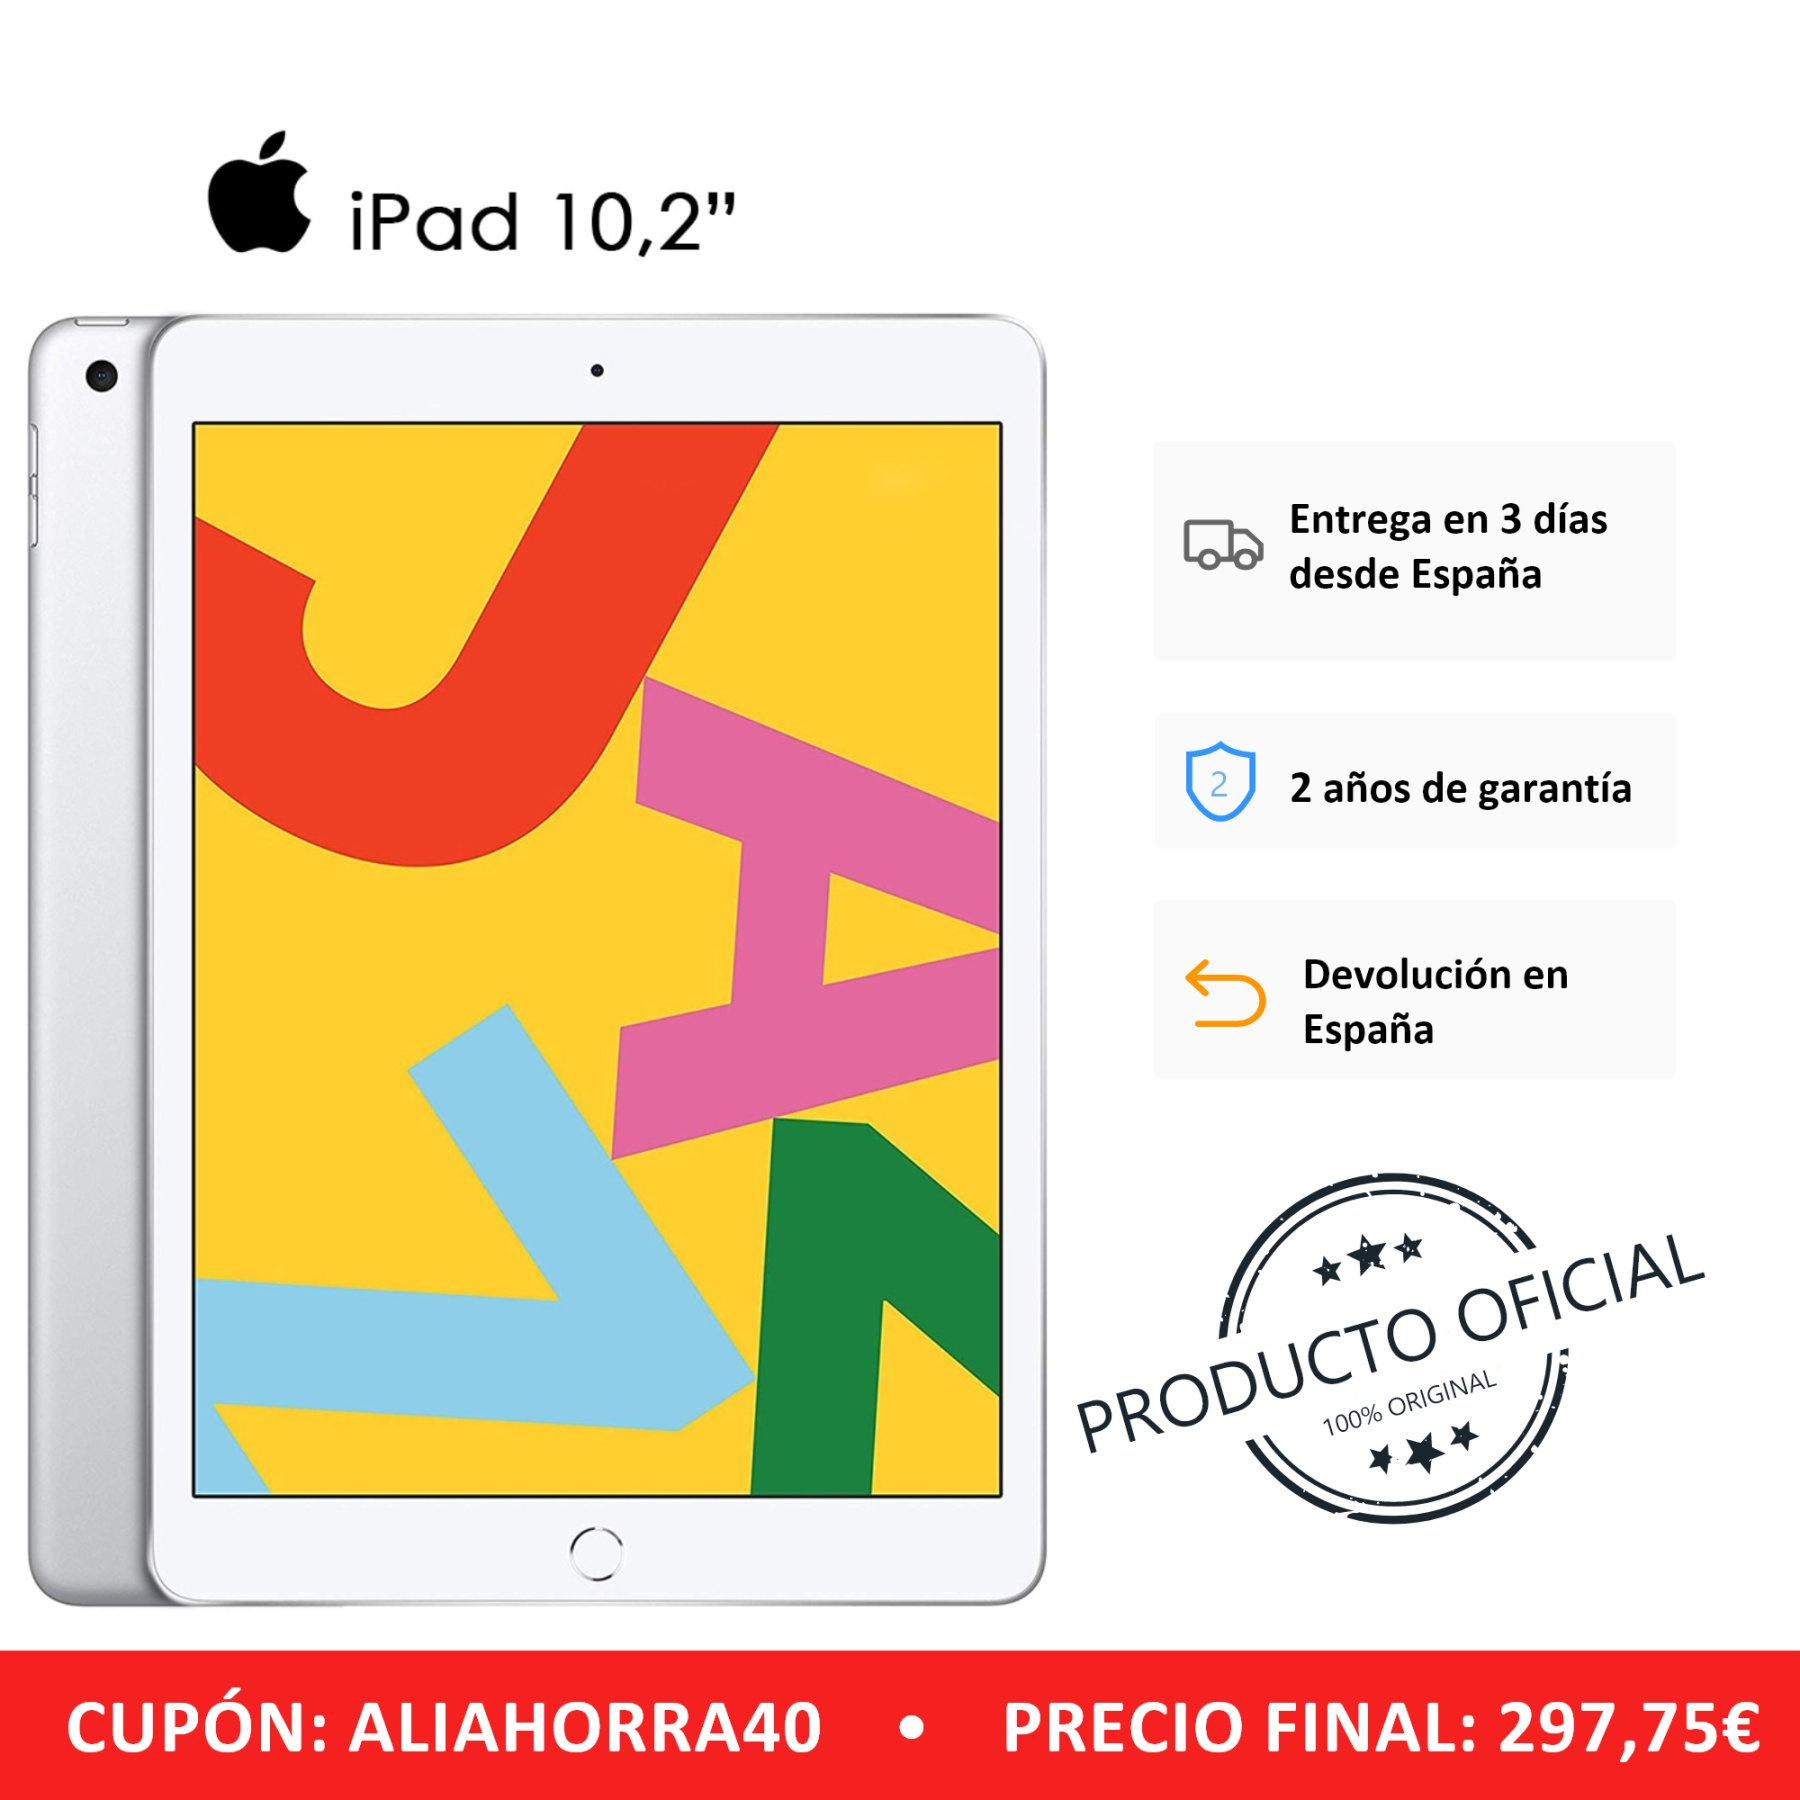 """Apple IPad Tablet Color Silver (Silver) 32 GB ROM Wi-Fi Band 10.2 """"Retina Display 8 MP Rear Camera 10-inch Tablet"""